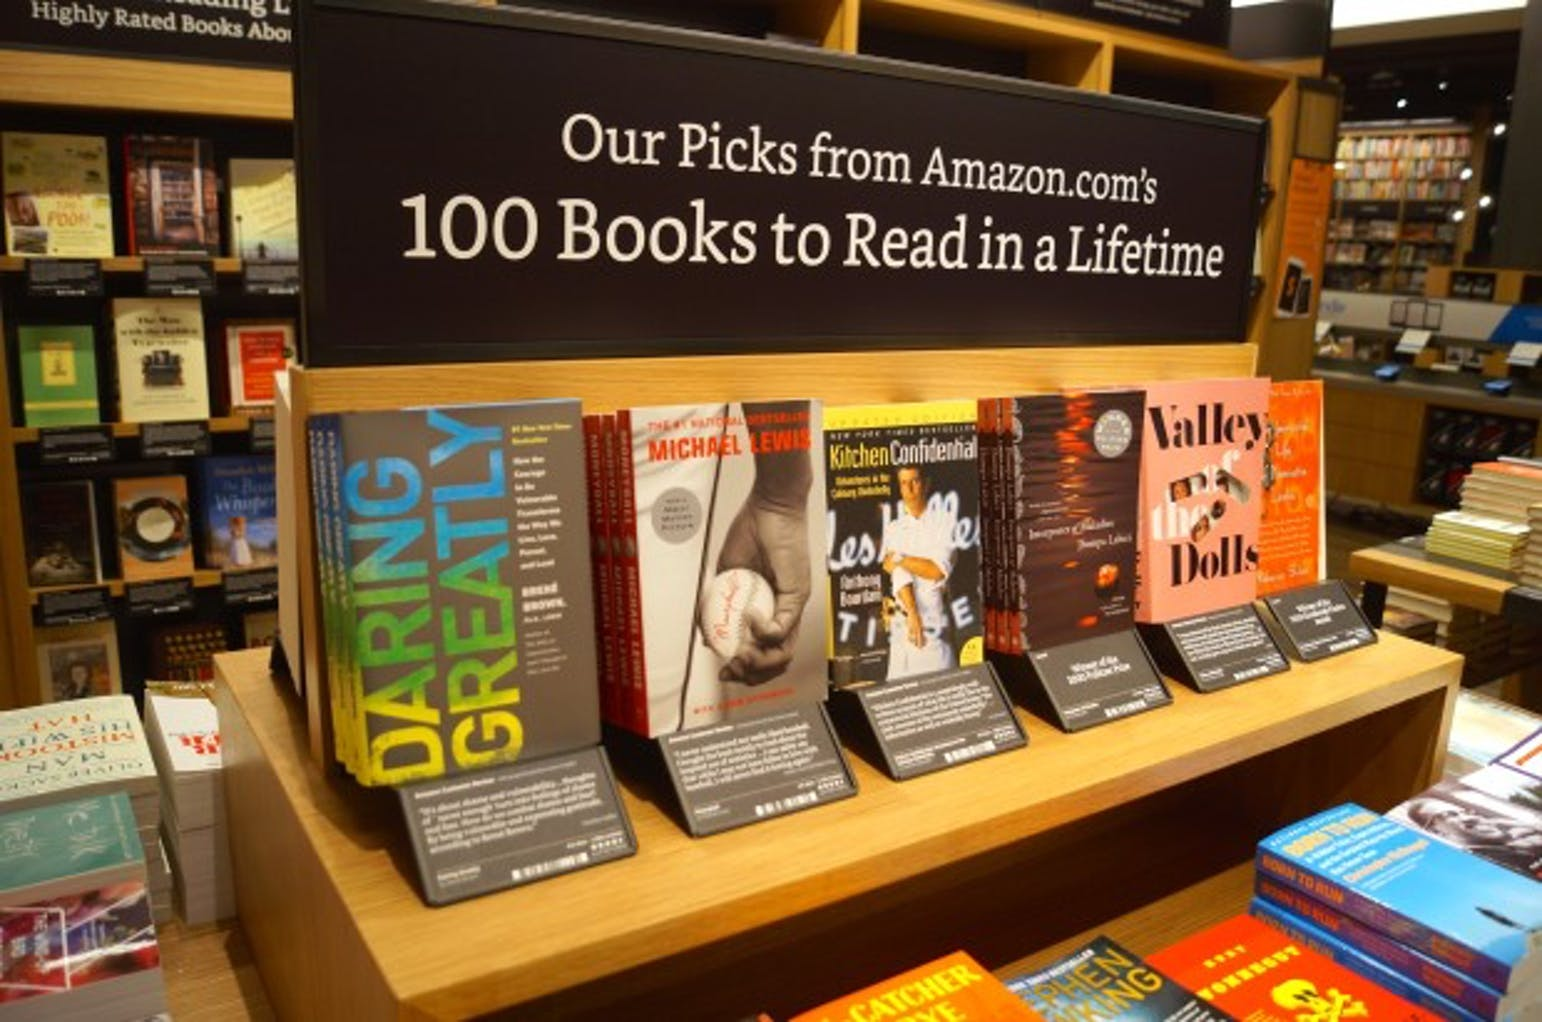 history and core business of amazon com and borders books In the book competing on analytics by davenport and harris, amazon is featured as an analytic competitor amazon was a new entrant to a very mature market and within 10 years became a leader in a market that saw the demise and eventual bankruptcy of a formidable competitor.